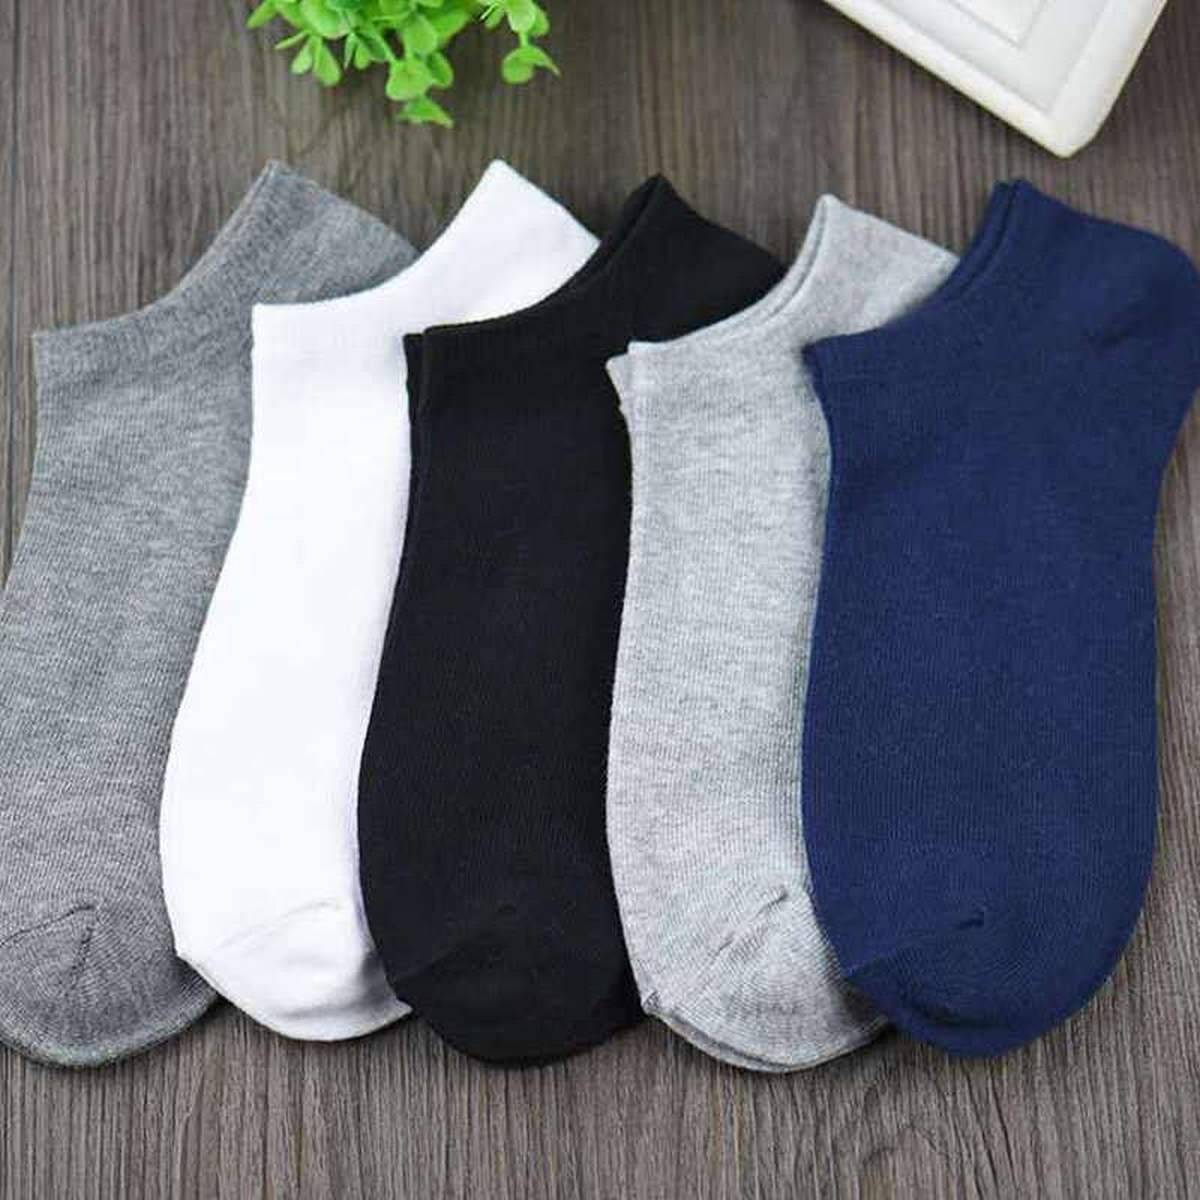 06 Pairs – Exported Ankle Socks for Women